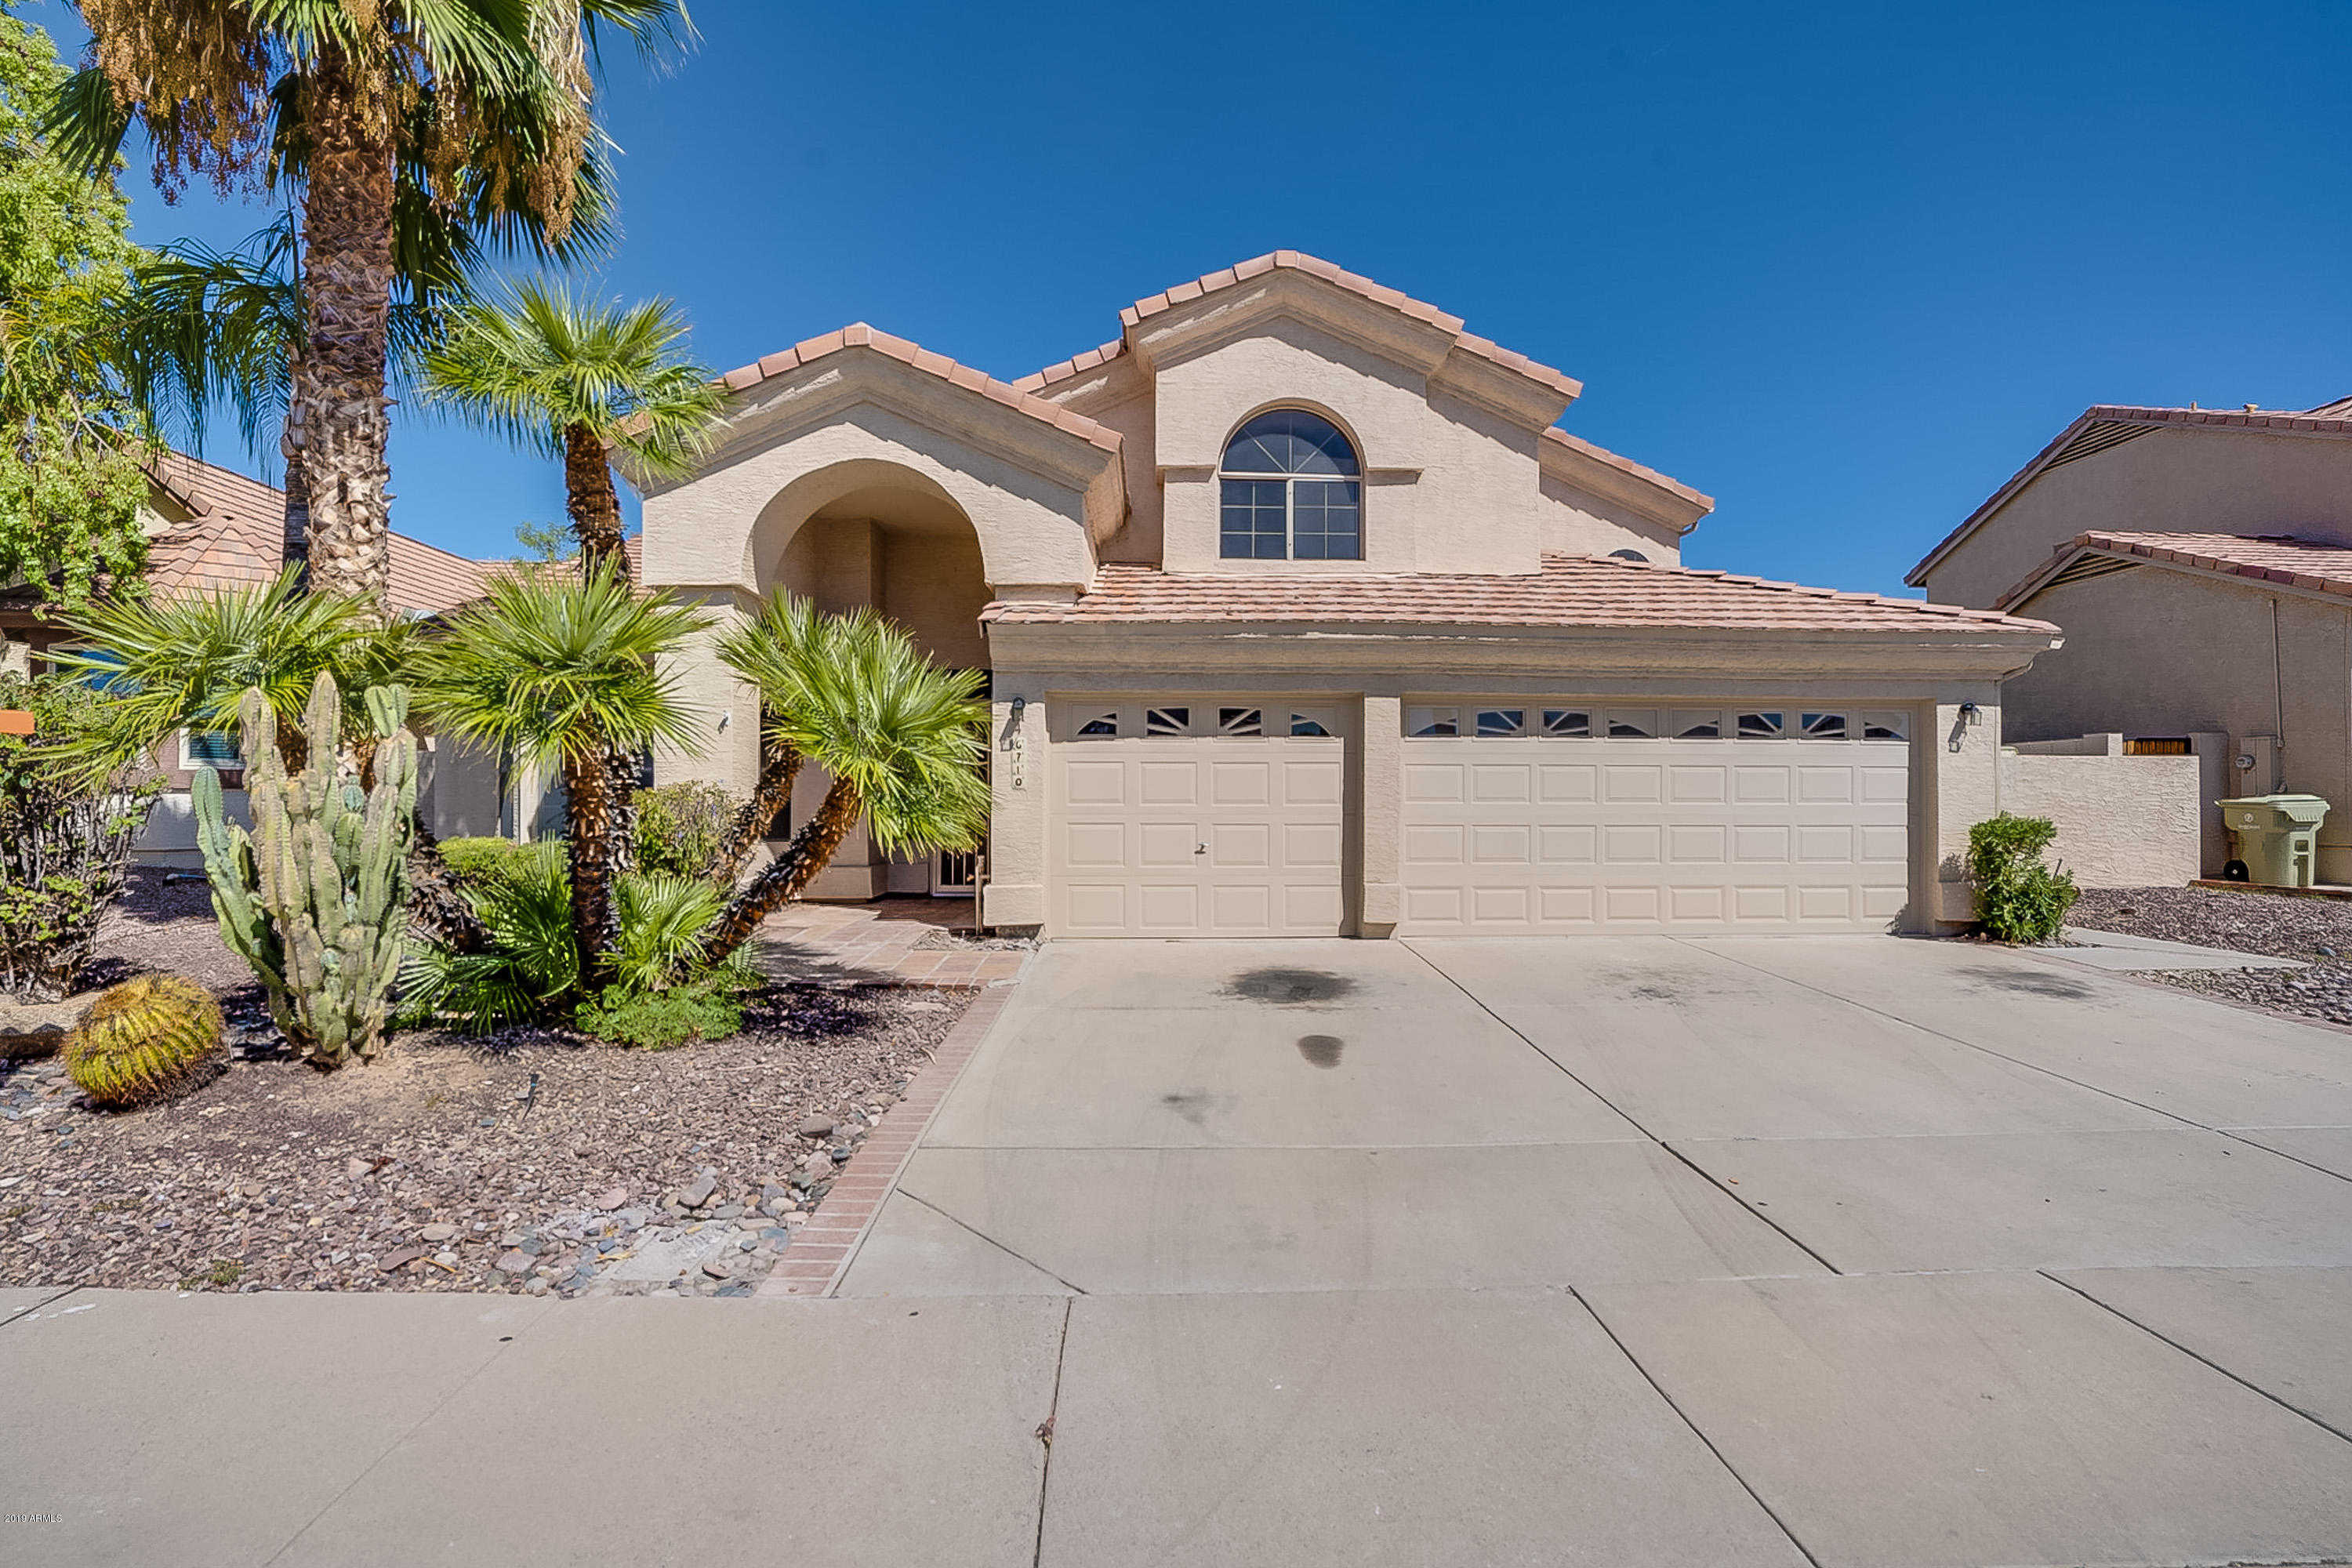 $384,900 - 4Br/3Ba - Home for Sale in Hamilton Arrowhead Ranch Two Lot 1-214, Glendale